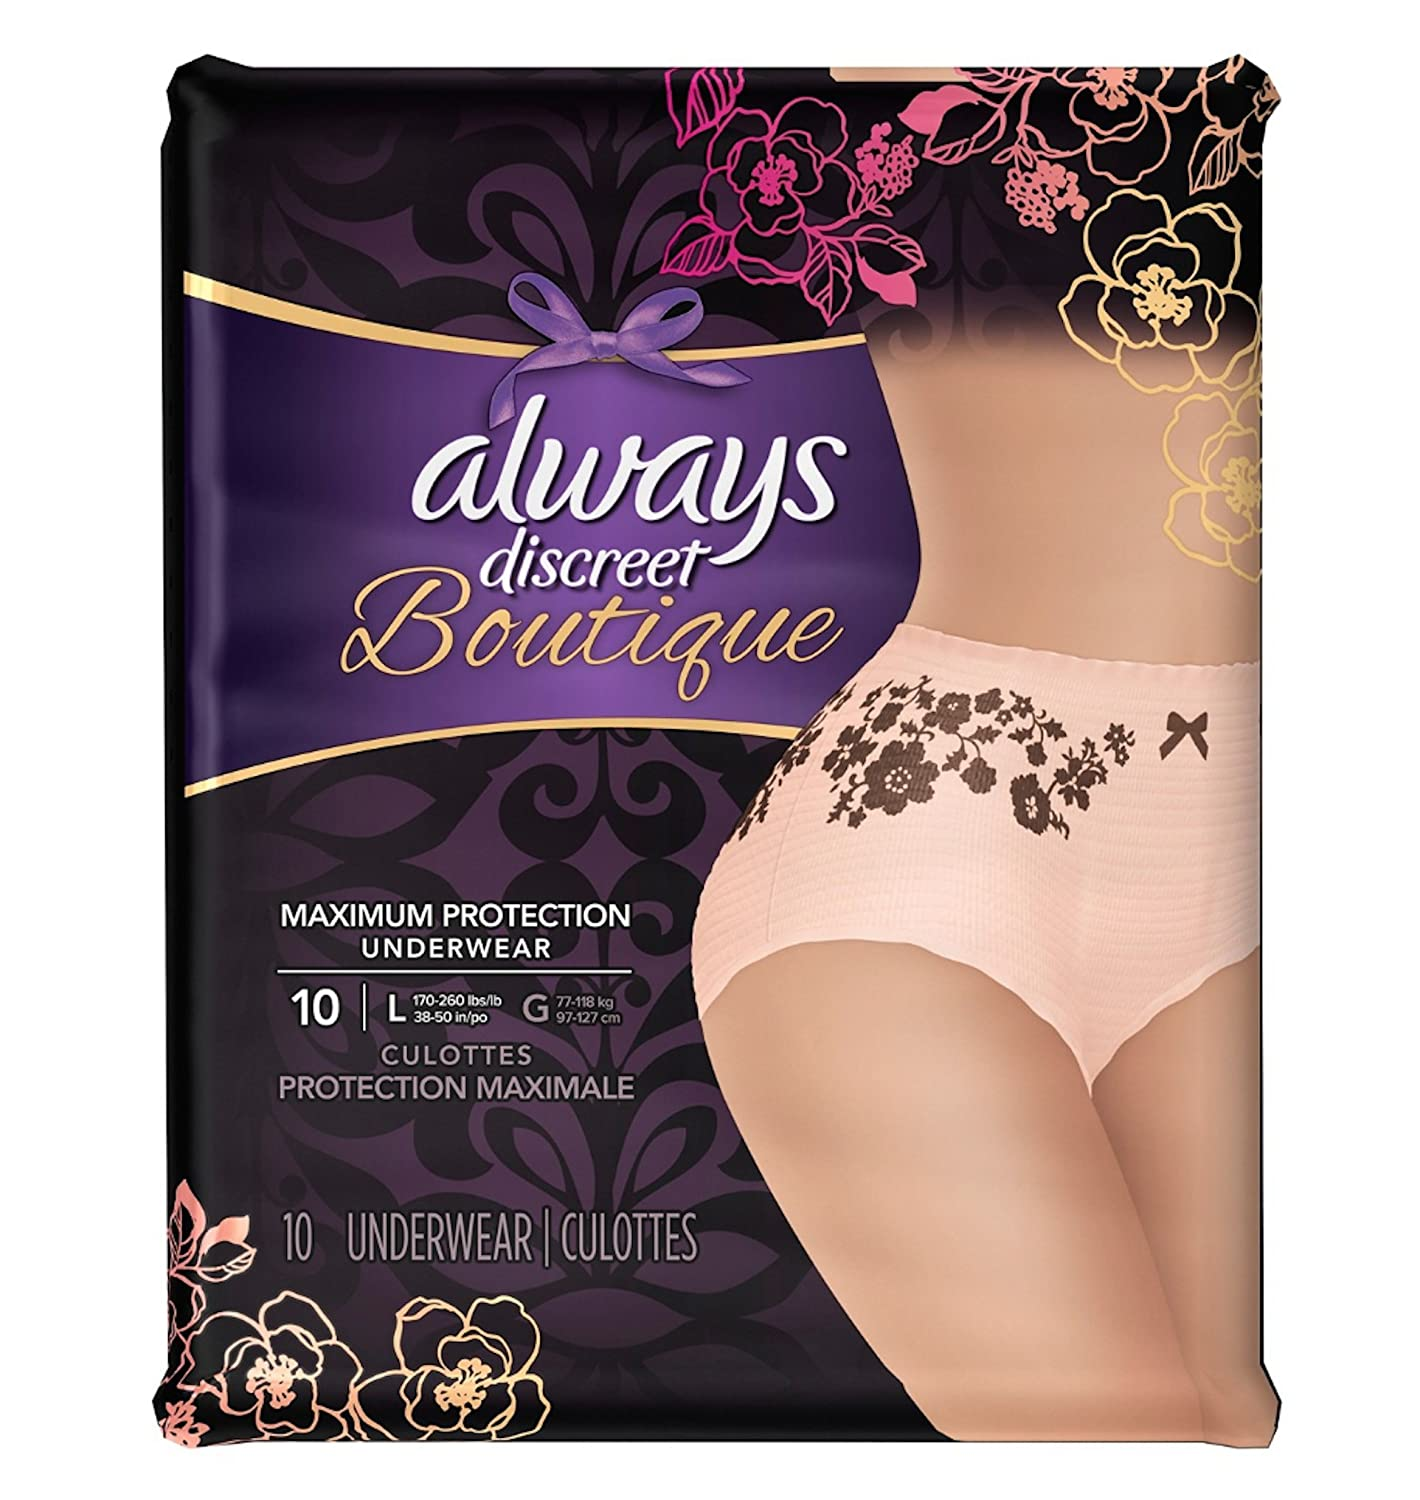 10 Count (1 Package) Large, Always Discreet Boutique Incontinence Underwear, Maximum Absorbency, Peach